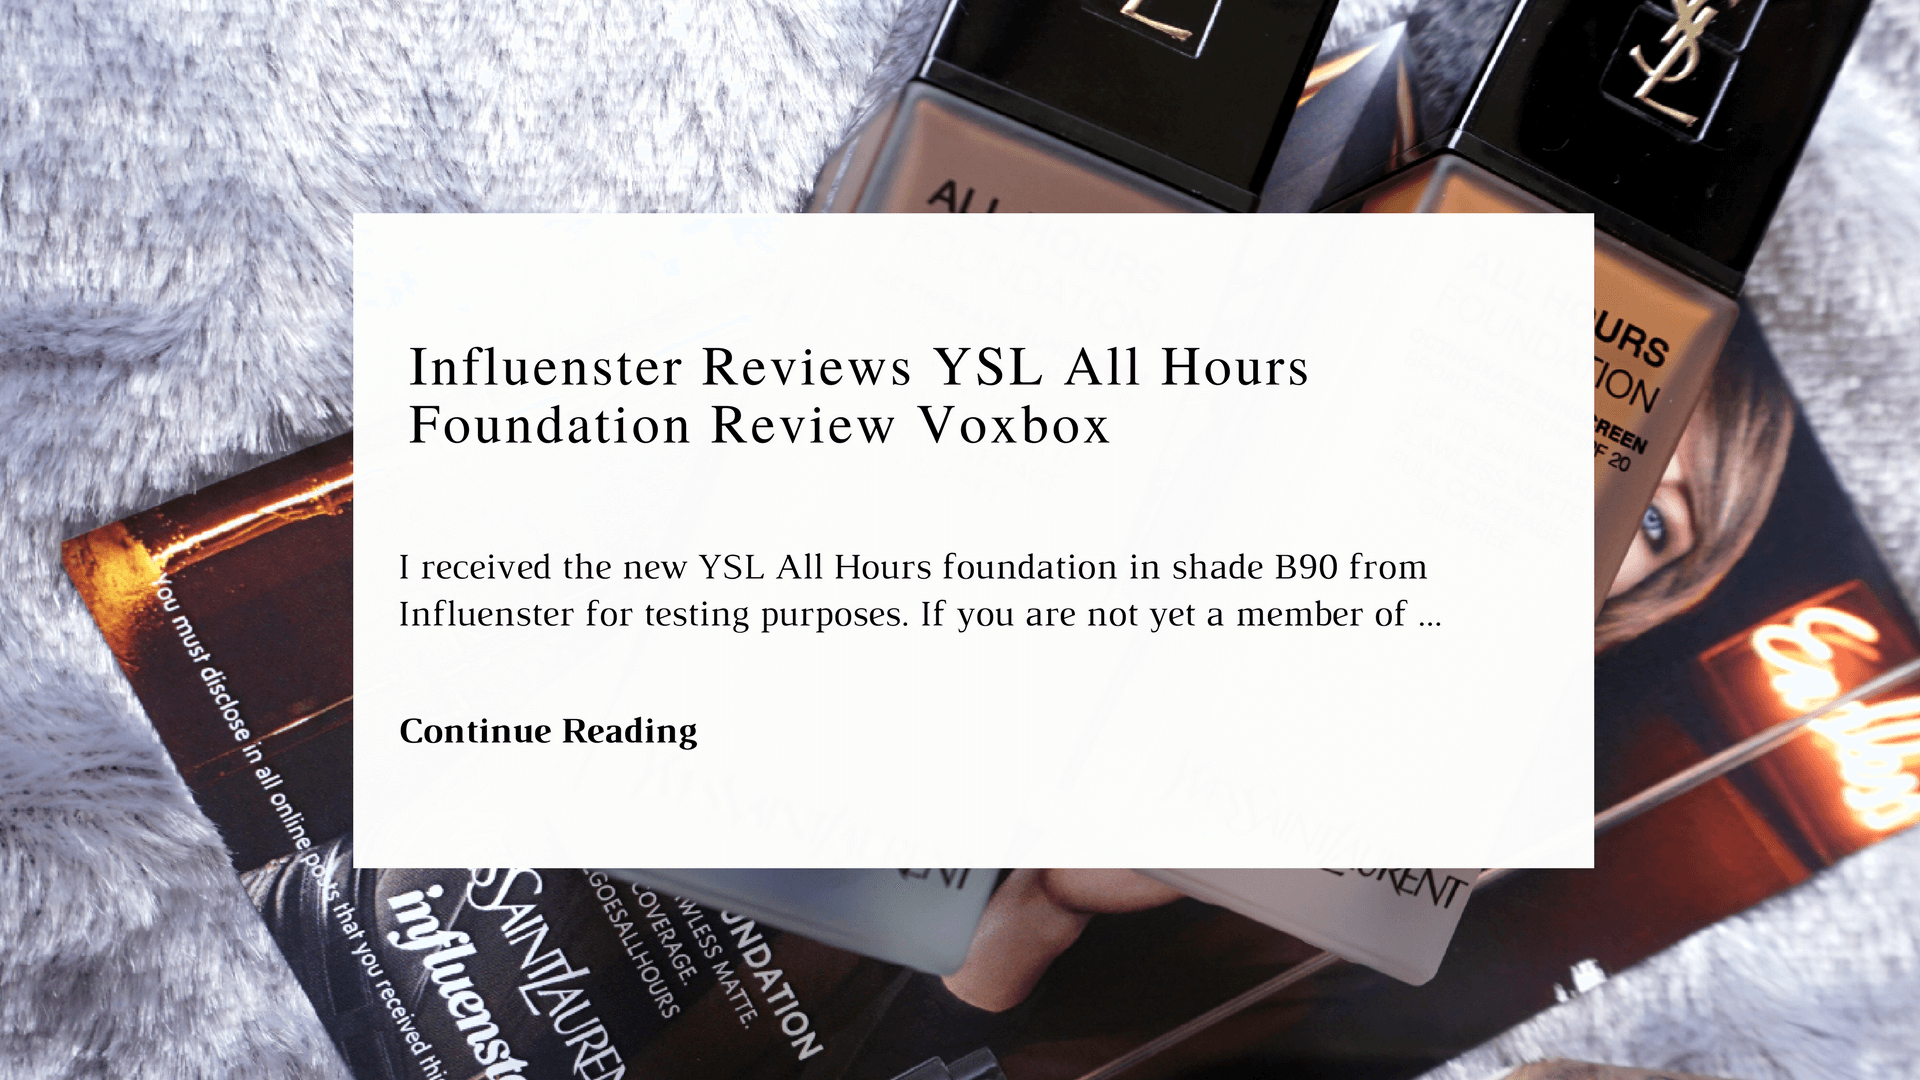 Influenster Reviews YSL All Hours Foundation Review Voxbox Reviews | Chiclypoised | Chiclypoised.com